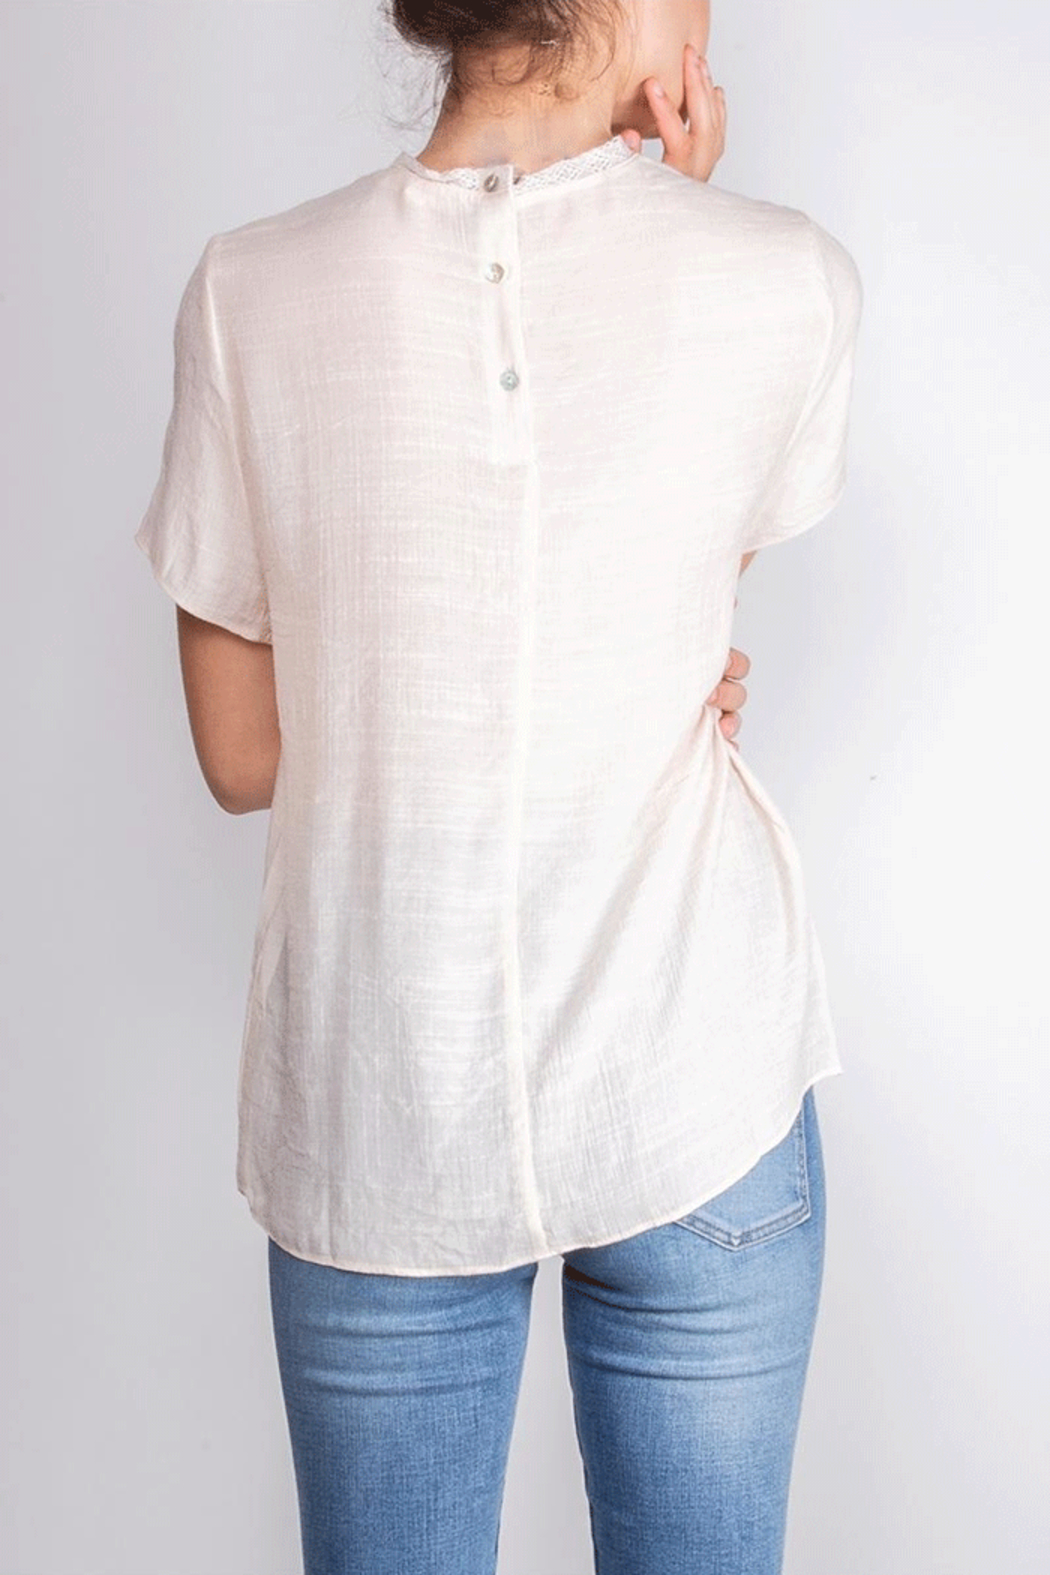 Le Lis Victorian Inspired Blouse - Back Cropped Image